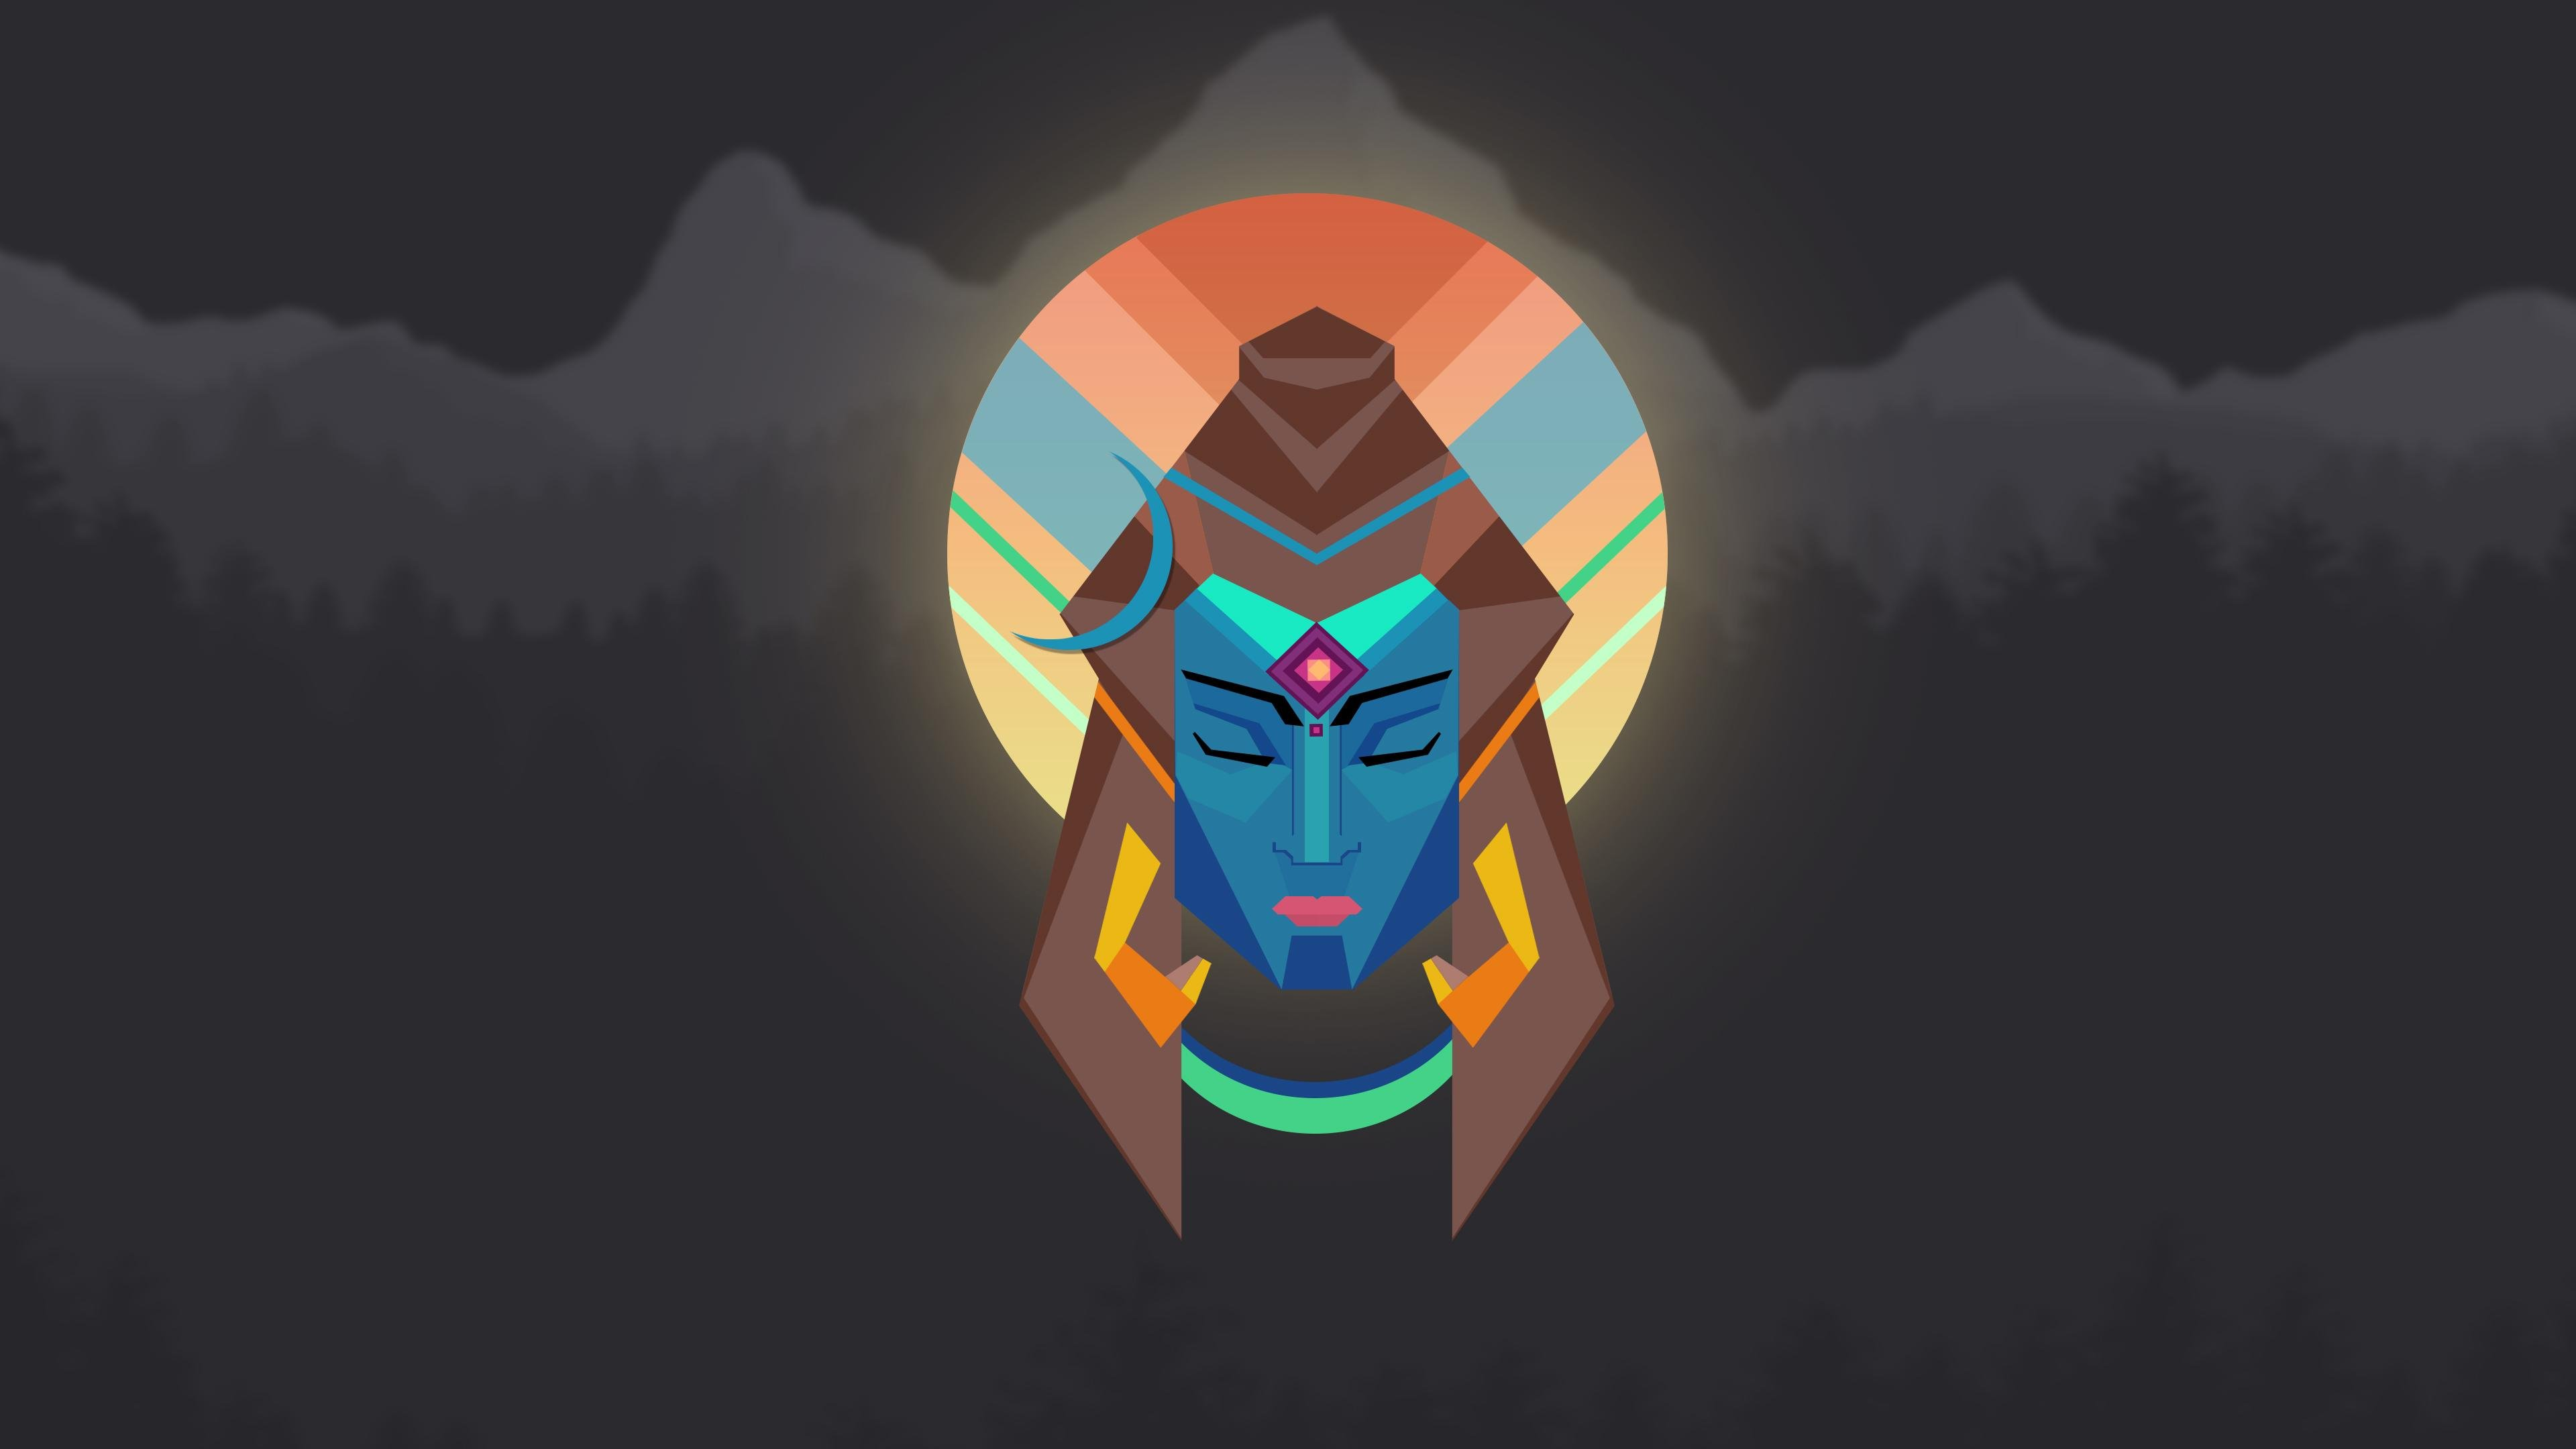 Shiva Wallpapers Hd Posted By Michelle Tremblay